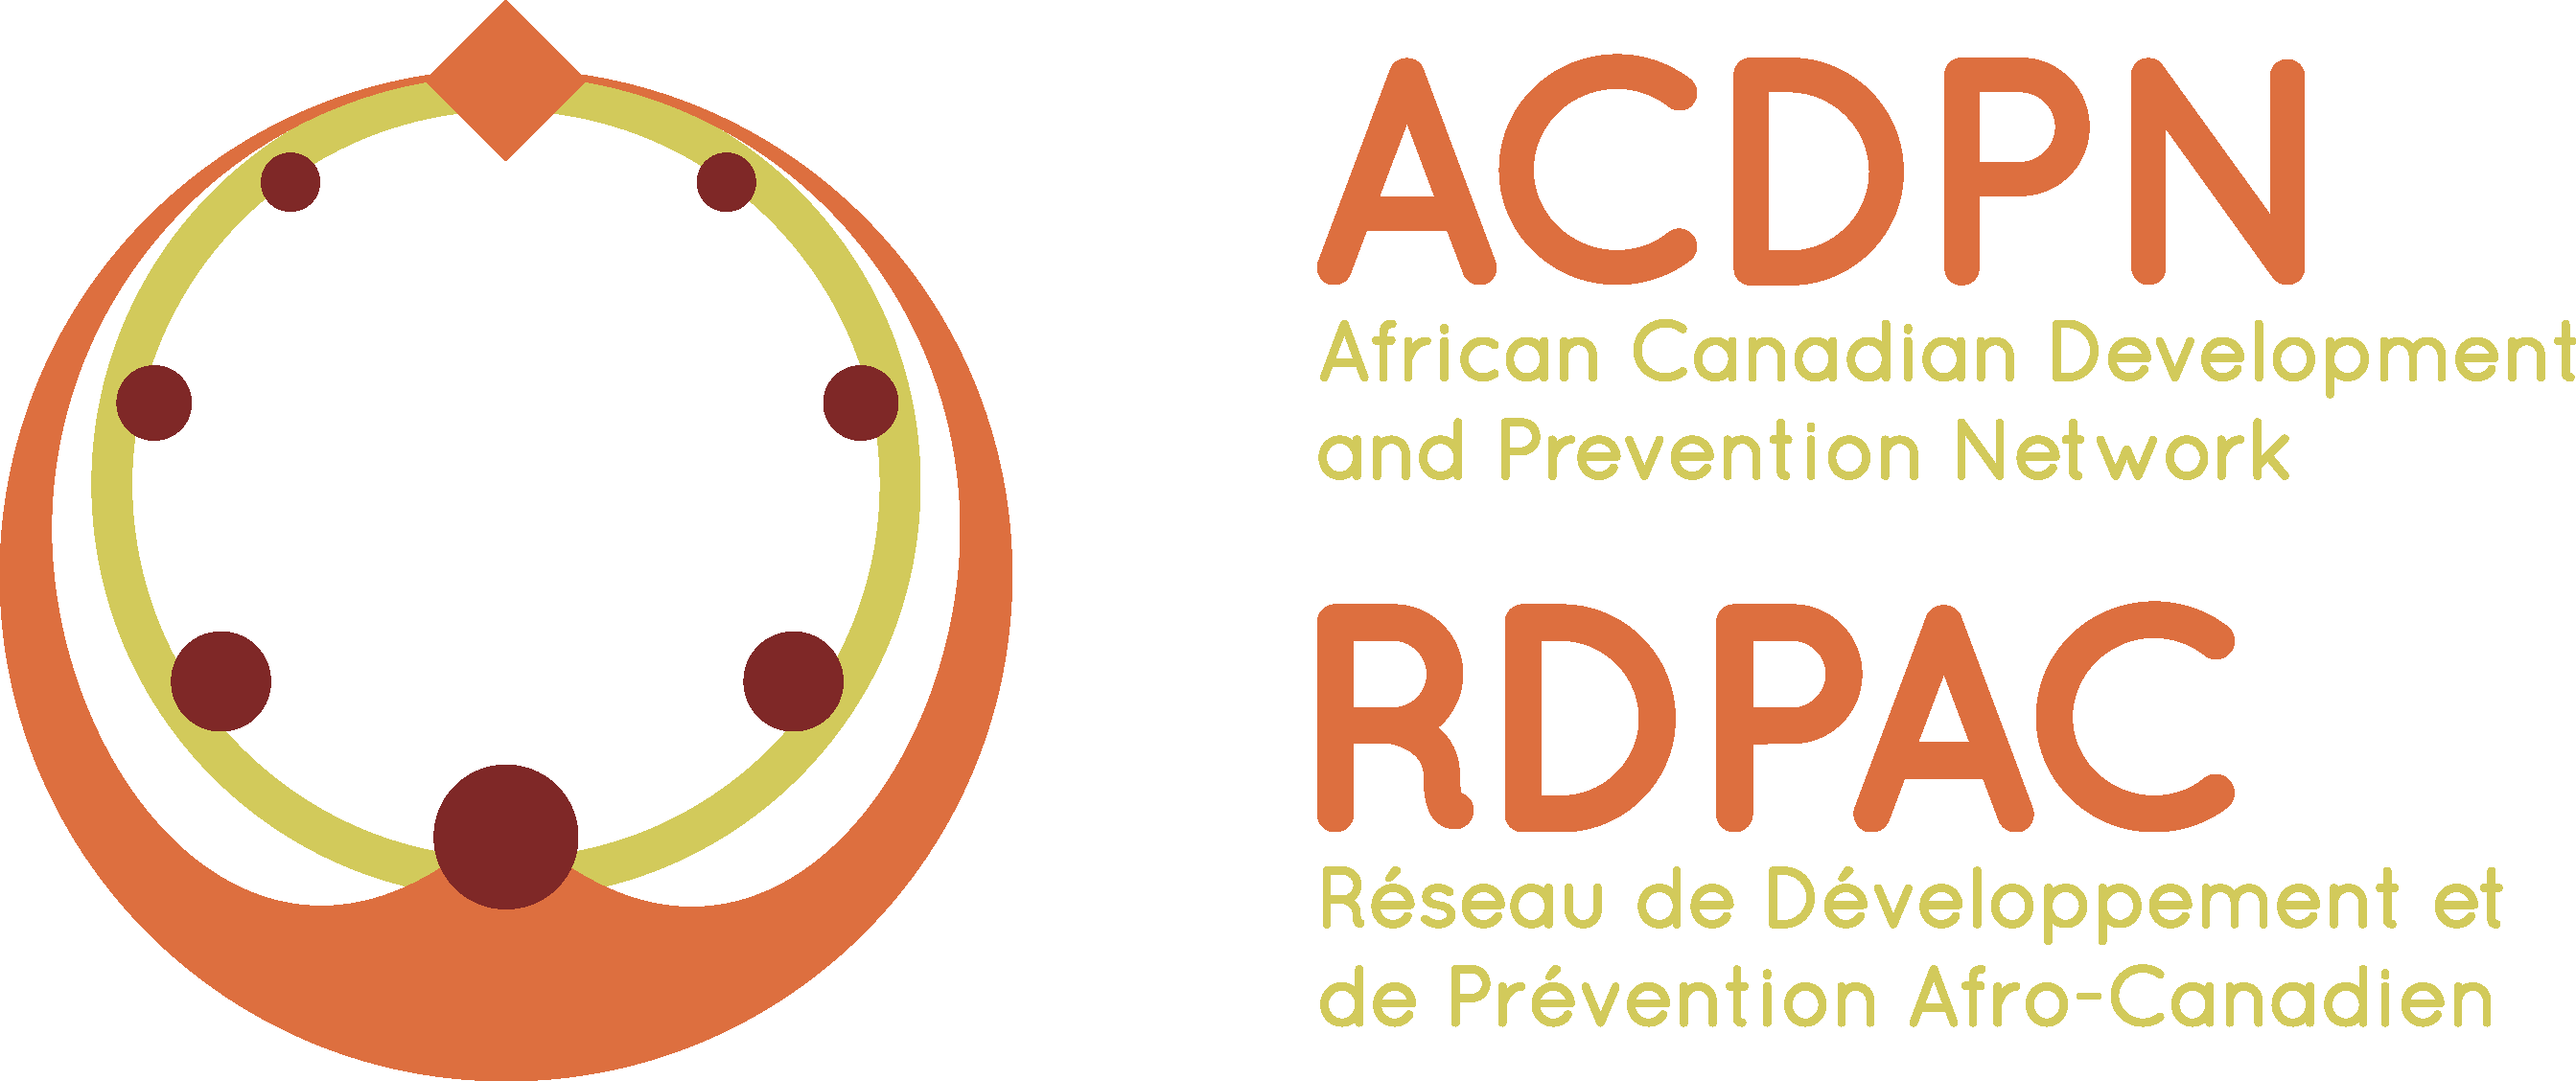 African Canadian Development and Prevention Network